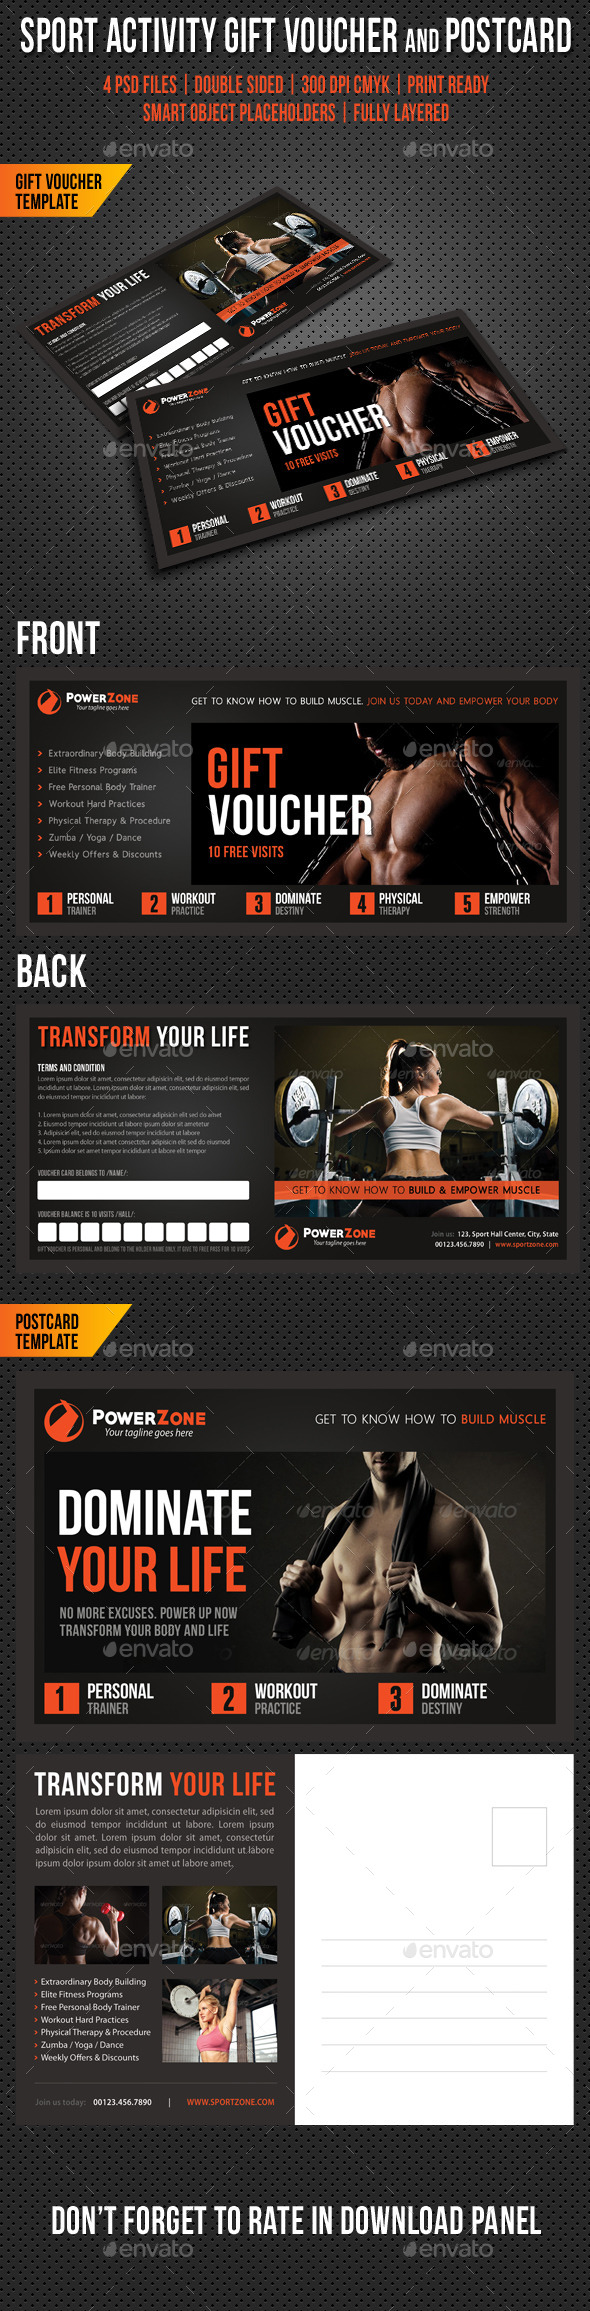 GraphicRiver Sport Activity Gift Voucher and Postcard V03 10498004